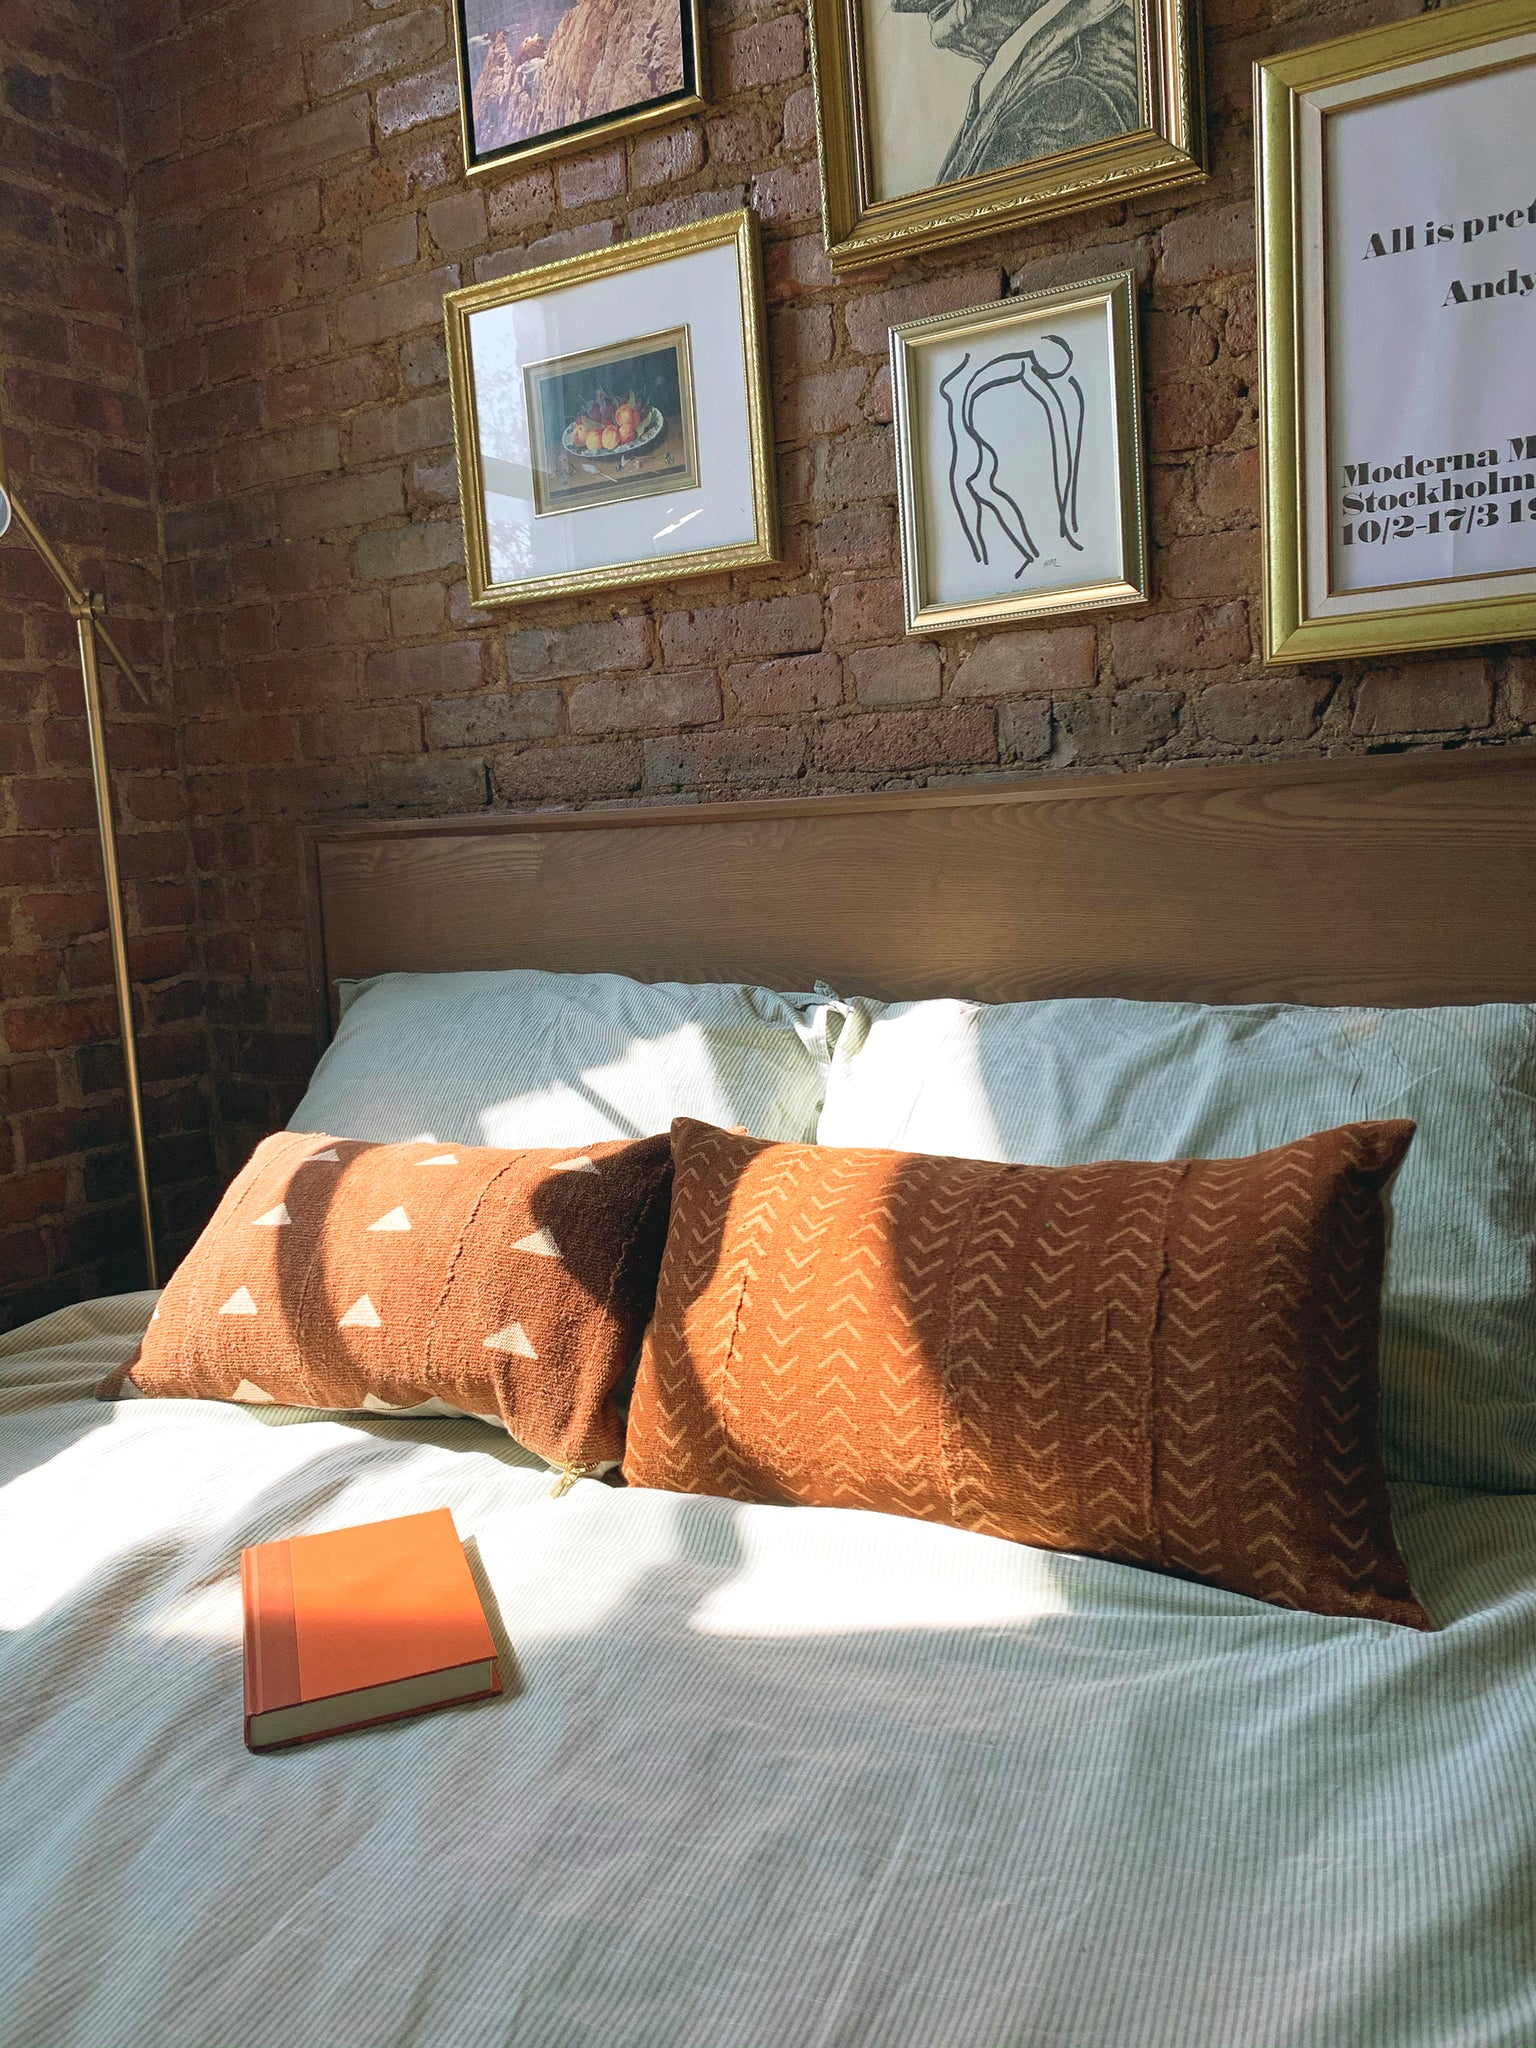 A closeup of a bed in front of a brick wall with gold picture frames. two long rust colored mud cloth pillows and an orange book on top of bed.